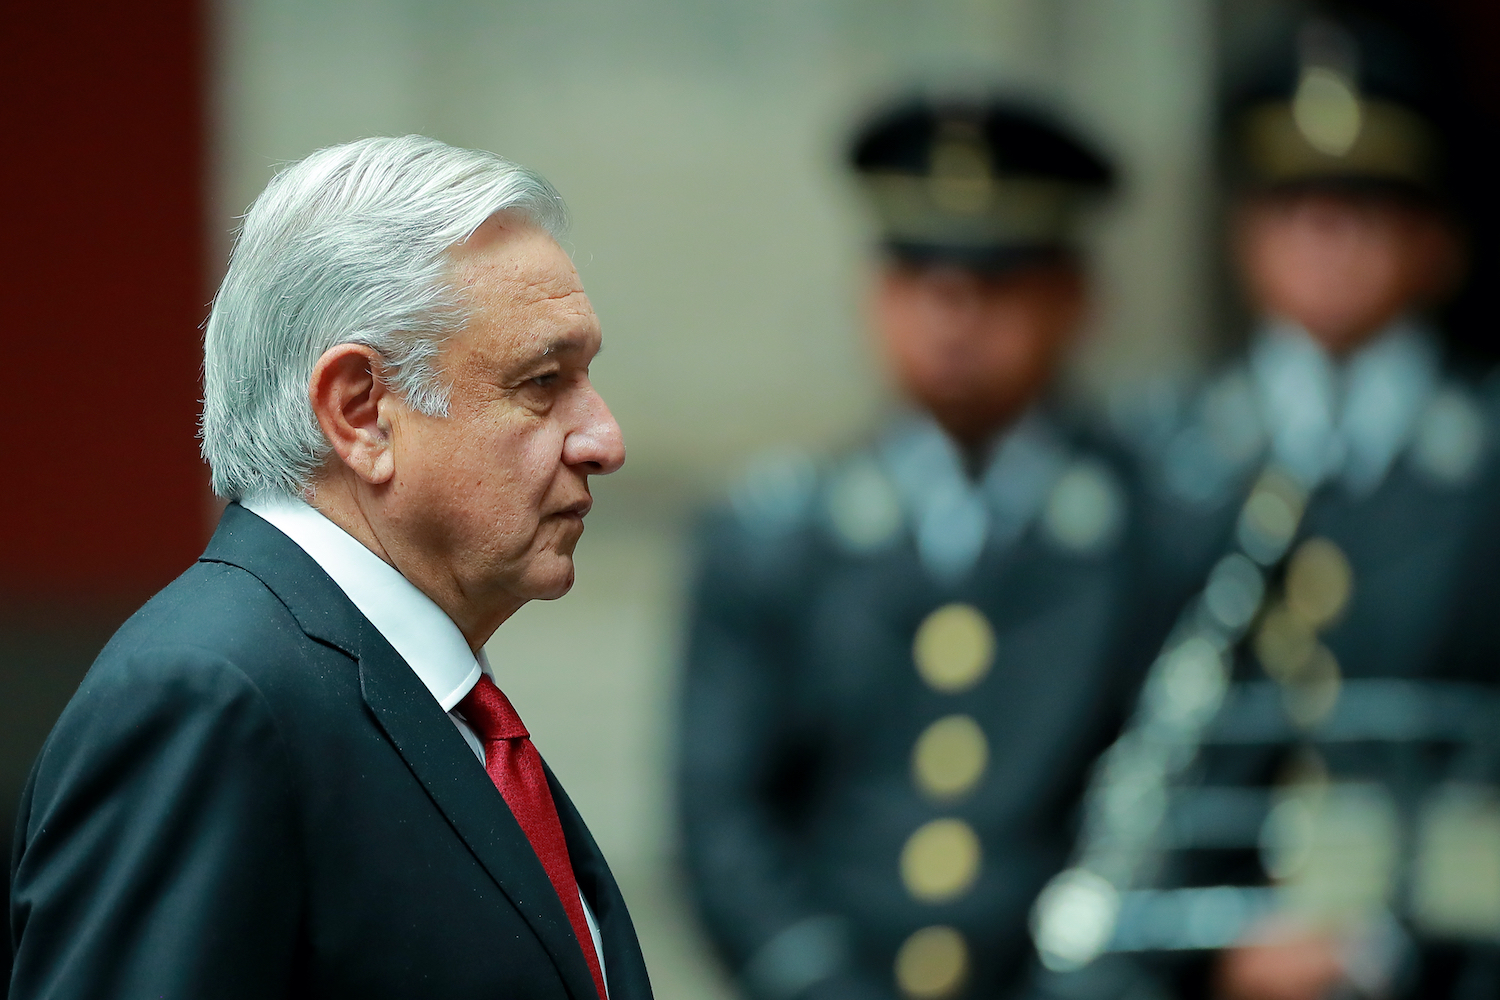 Mexican President Andres Manuel Lopez Obrador at the National Palace in Mexico City, on Oct. 17, 2019.